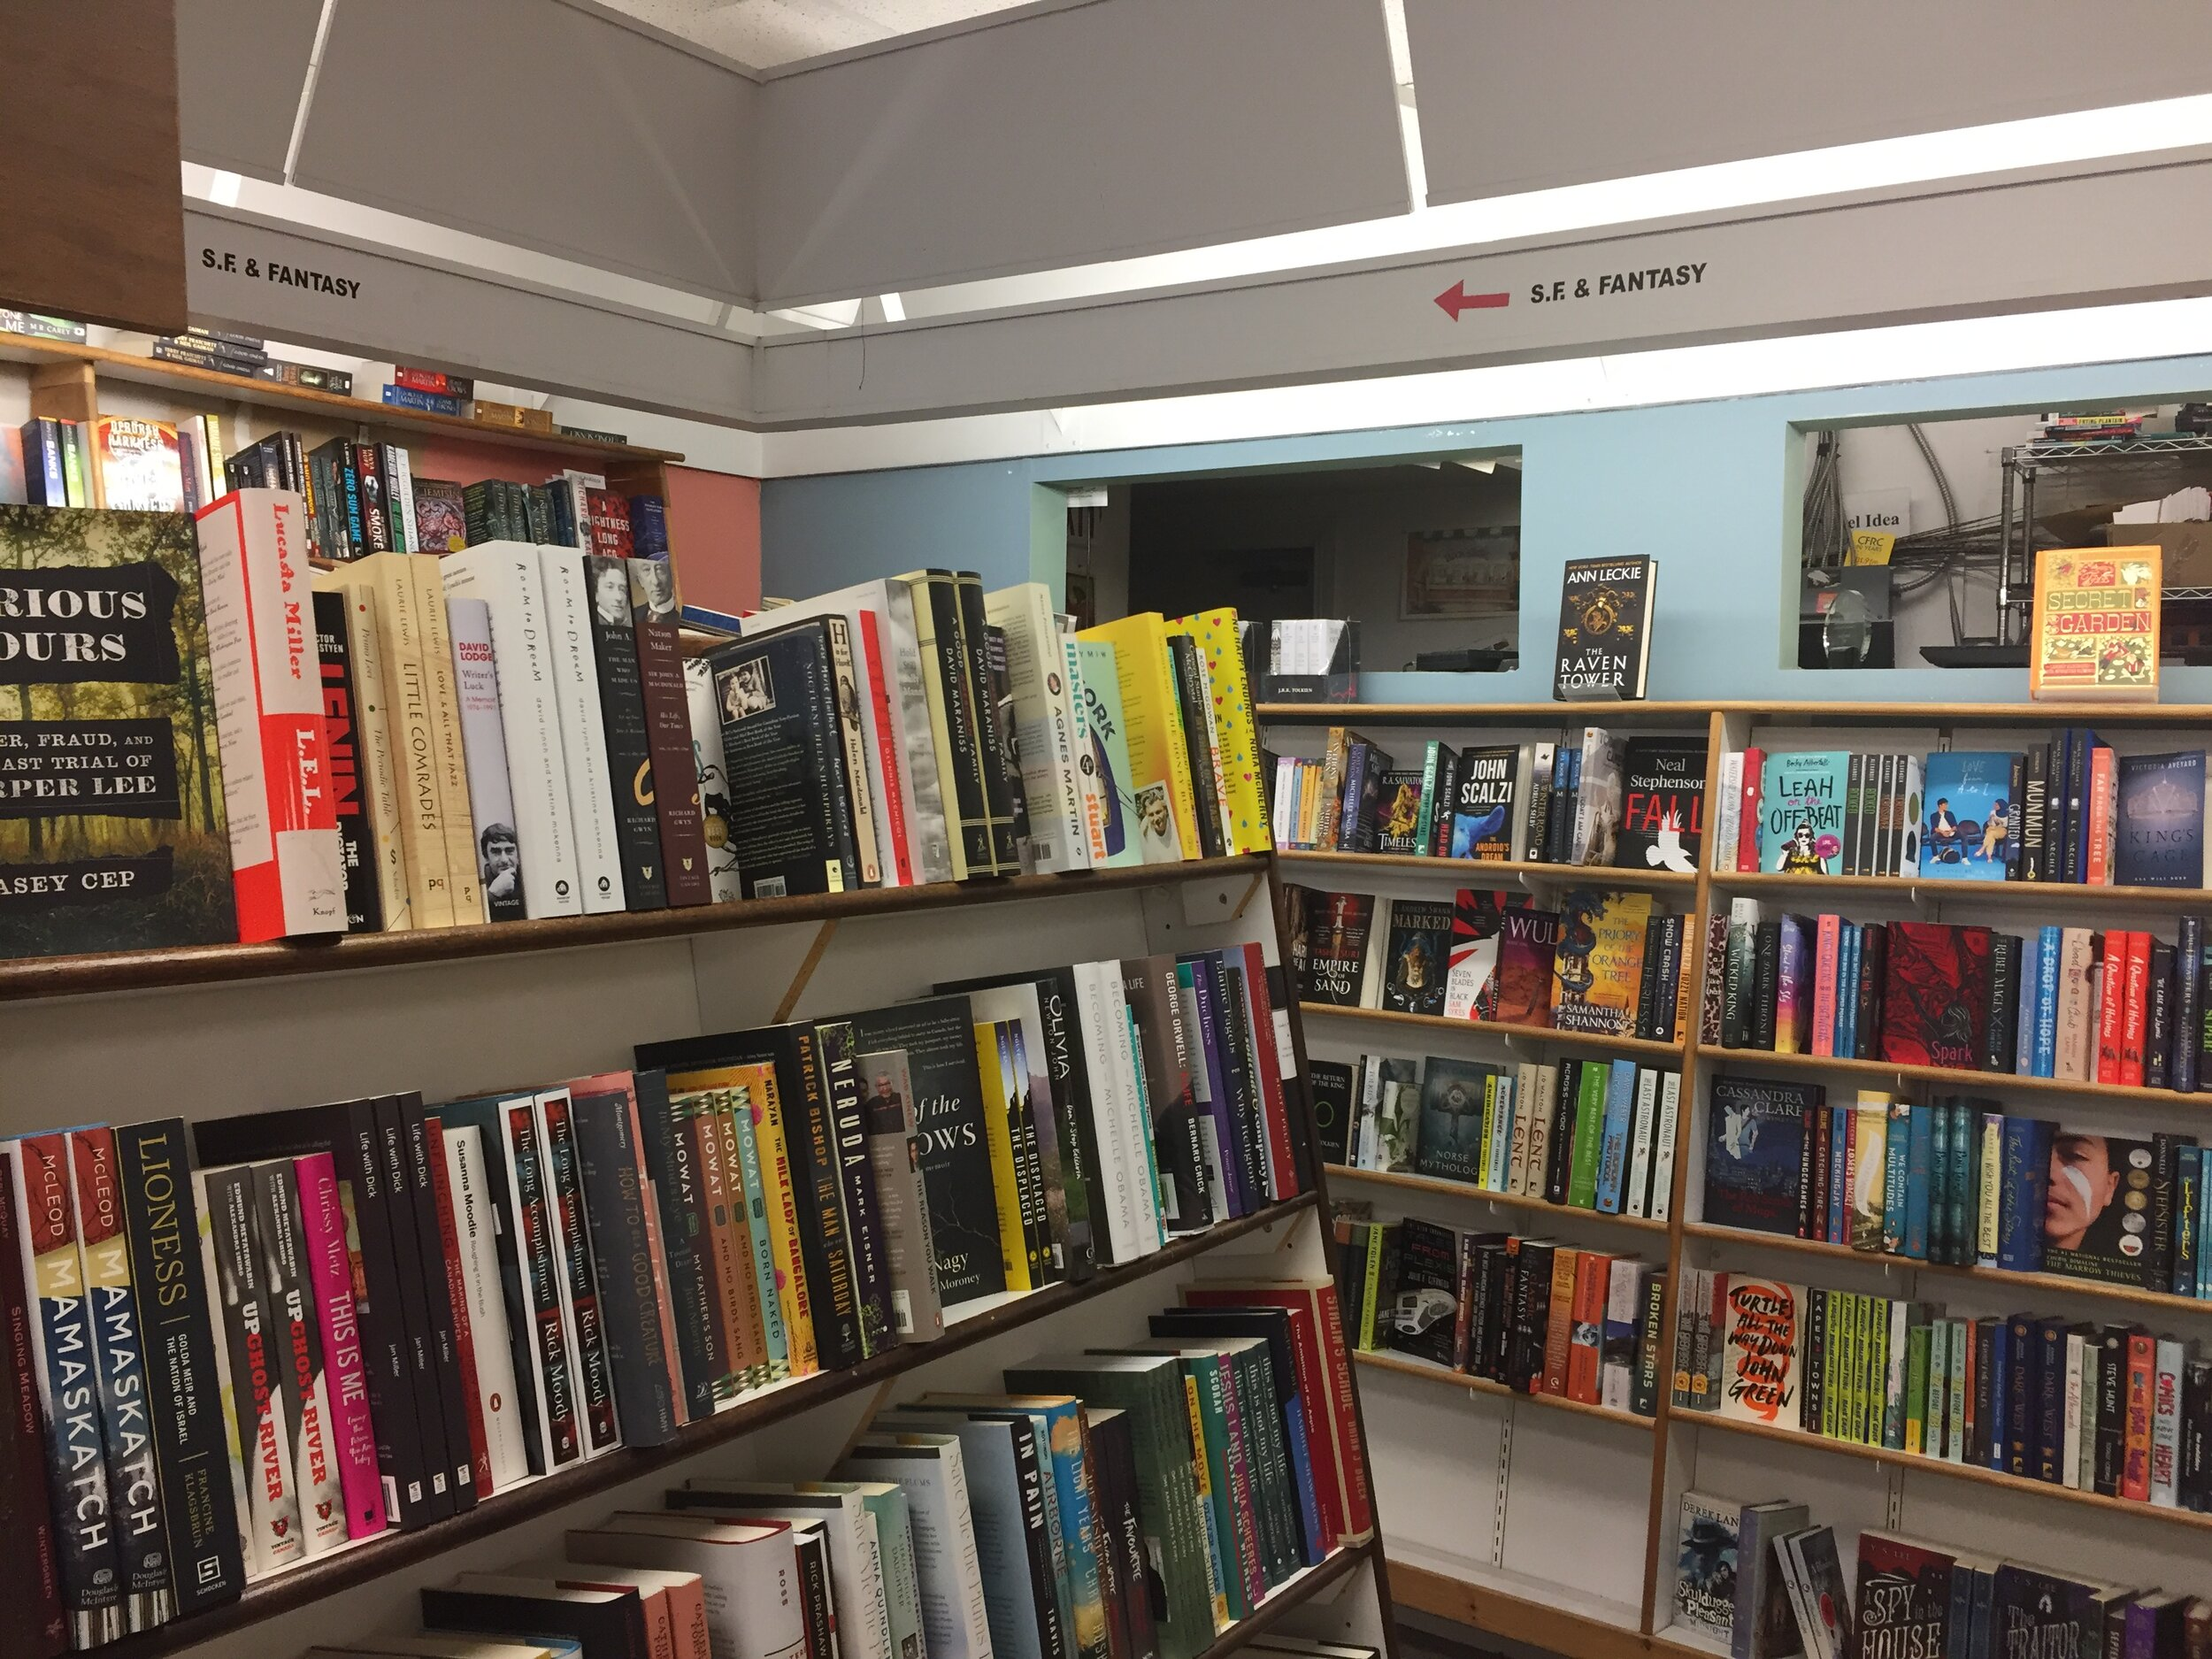 [image description: An inside look at Novel Idea. Large white bookshelves packed to the brim with books in every genre. And the bookshelves are the nice slanted ones that make browsing so much easier.]